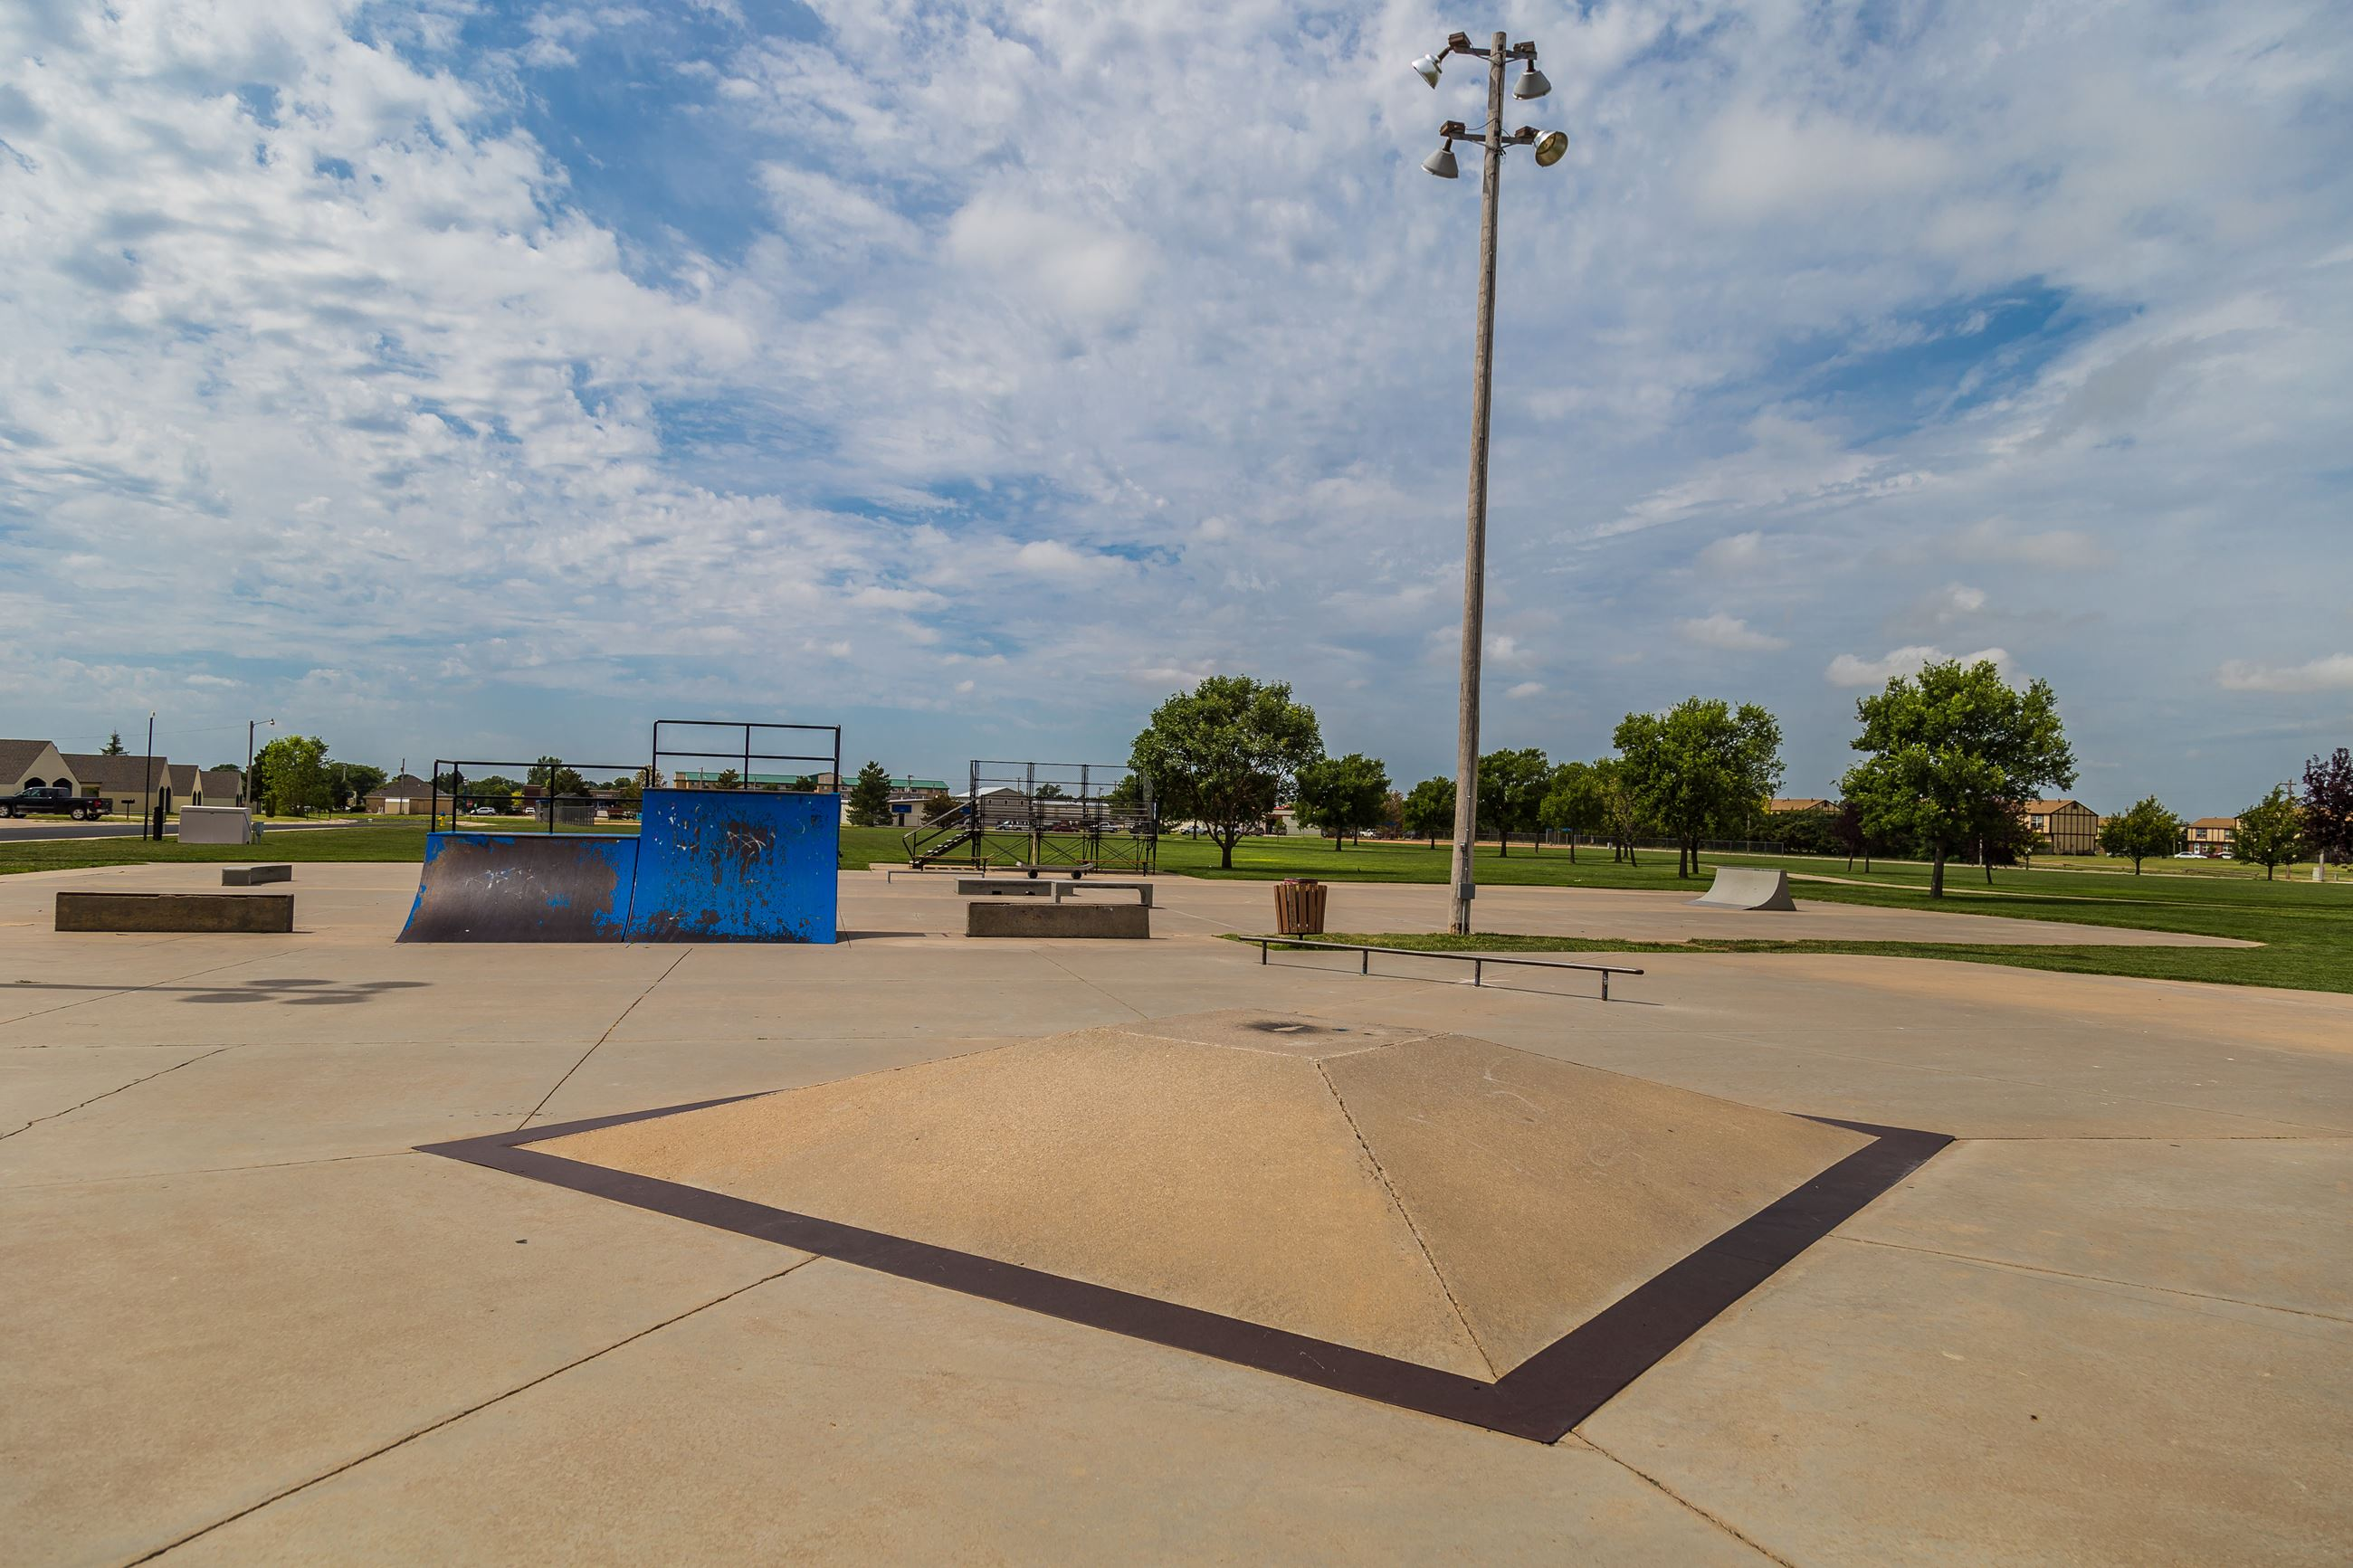 Open Concrete Terrain at Skate Park